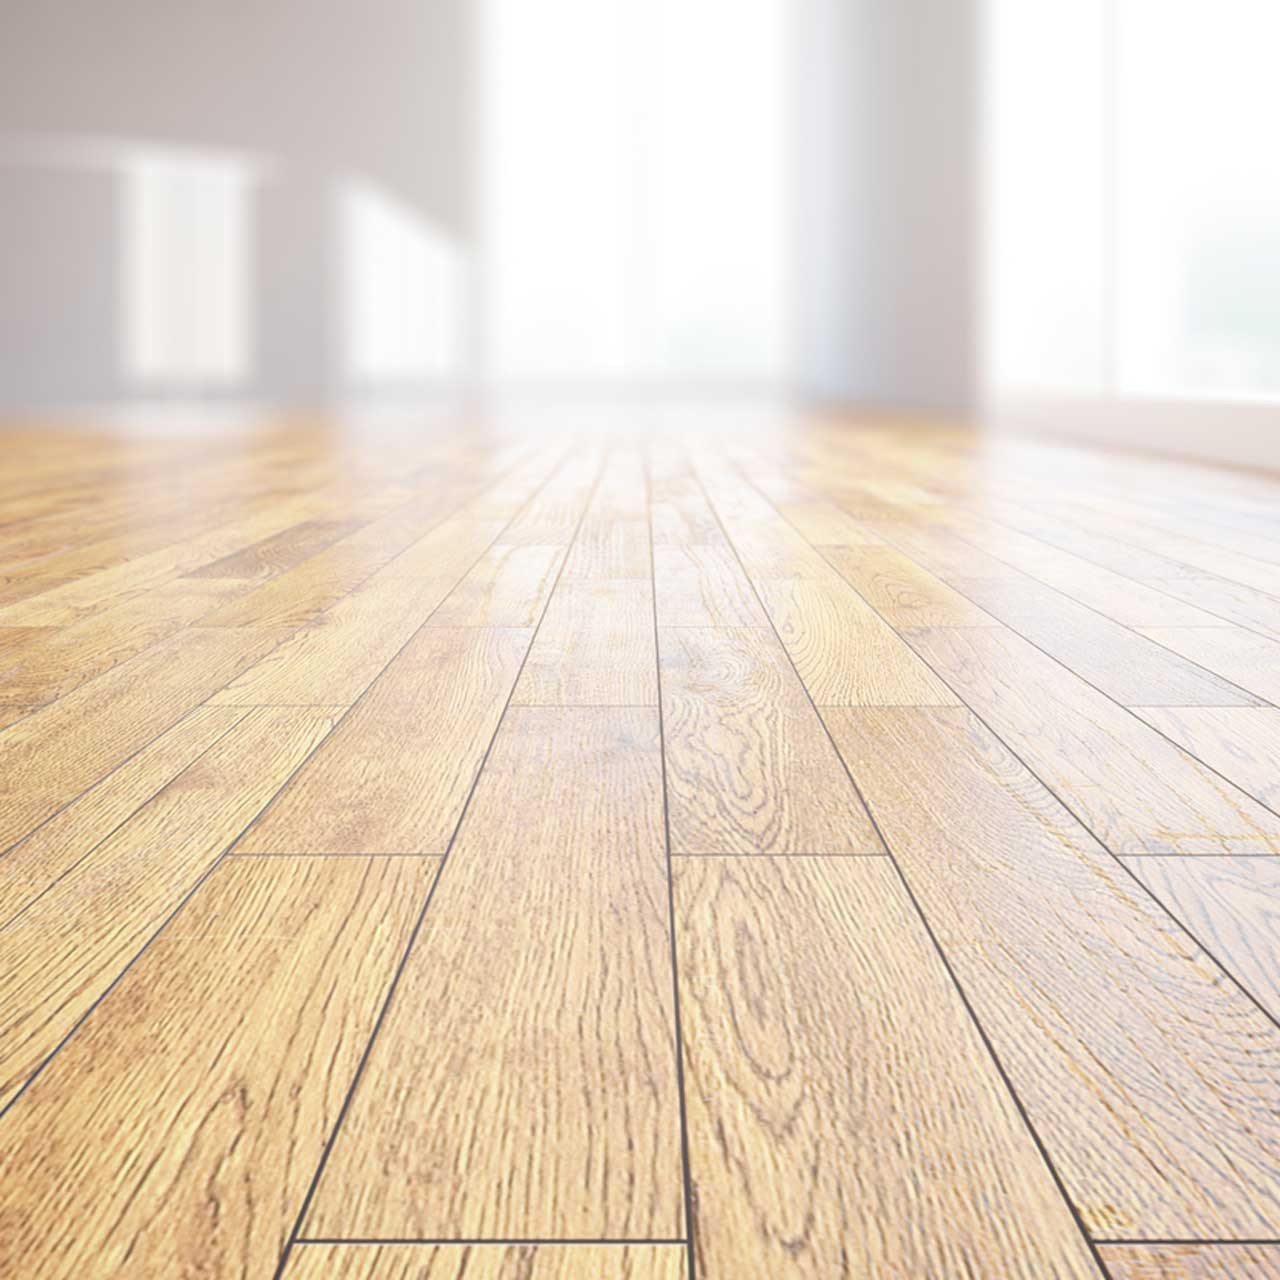 Owens Hardwood Flooring Reviews Of News Blogs events and Articles Allergy Standards Ltd with Chemicals In Flooring